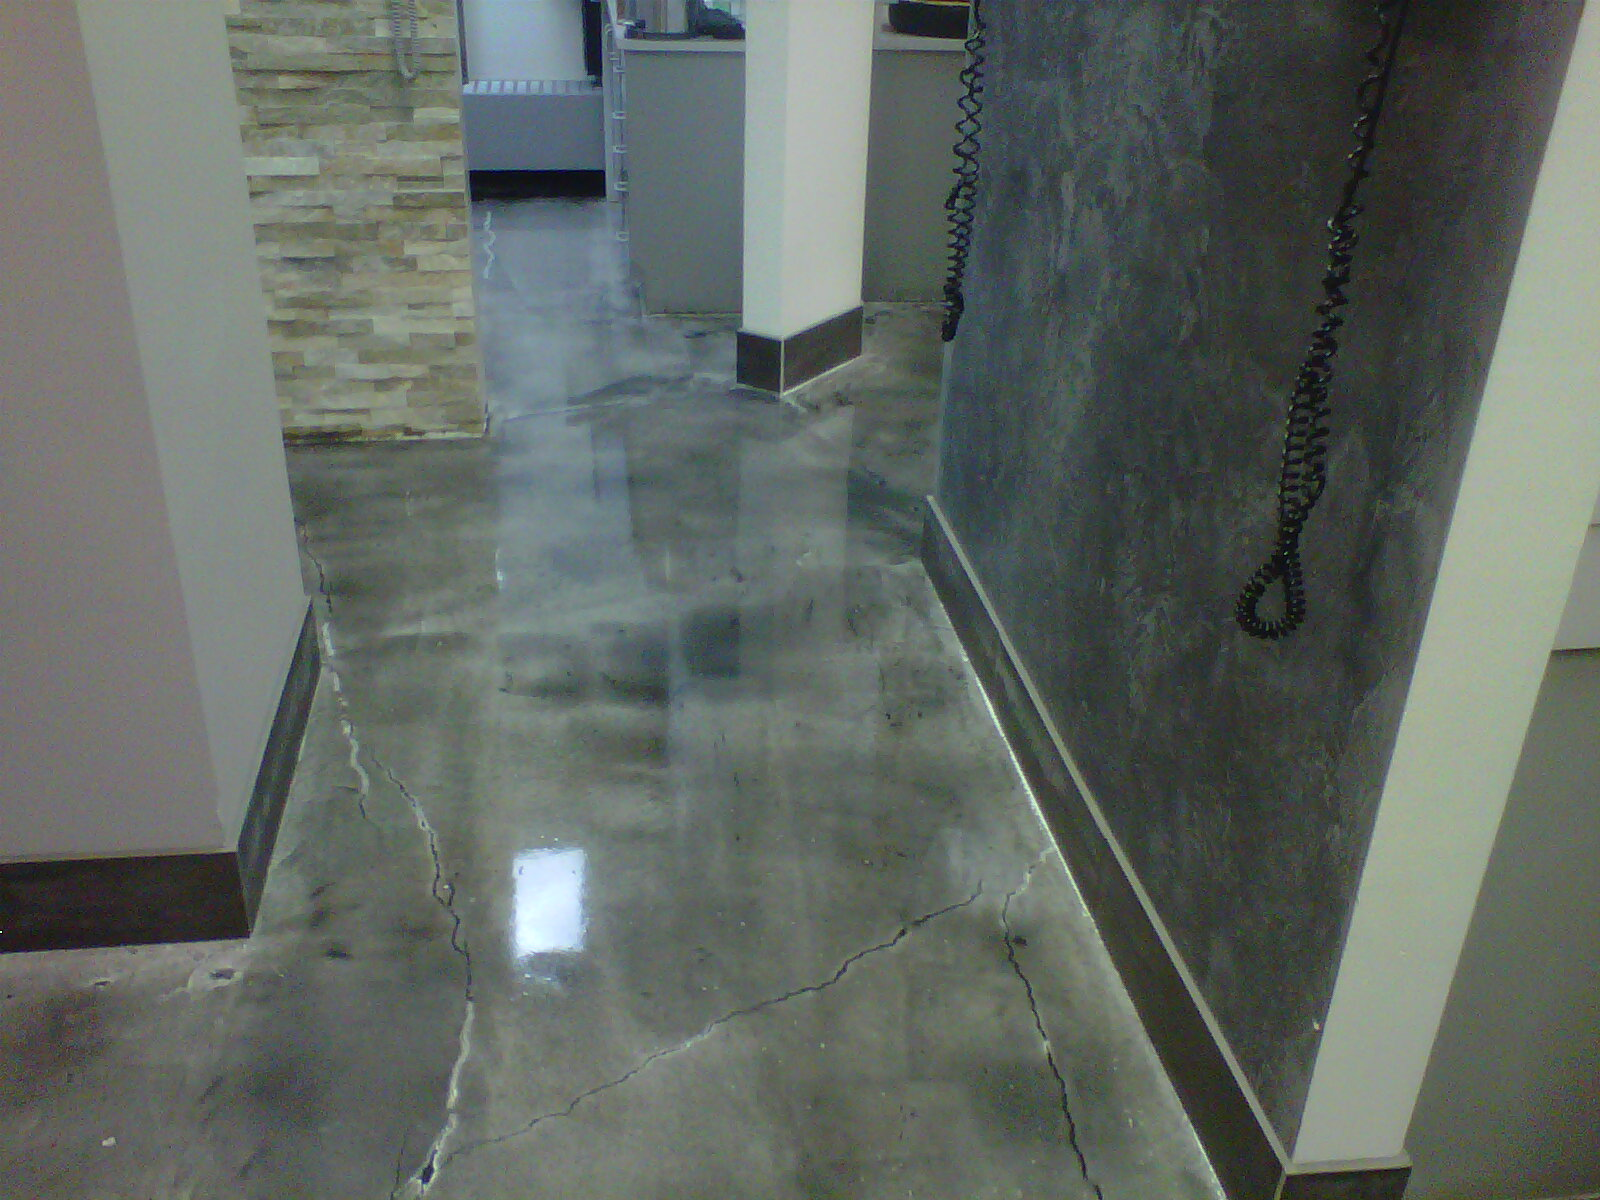 Polished Concrete Floors Ellicott City MD Part - Epoxy floor coating over asbestos tile